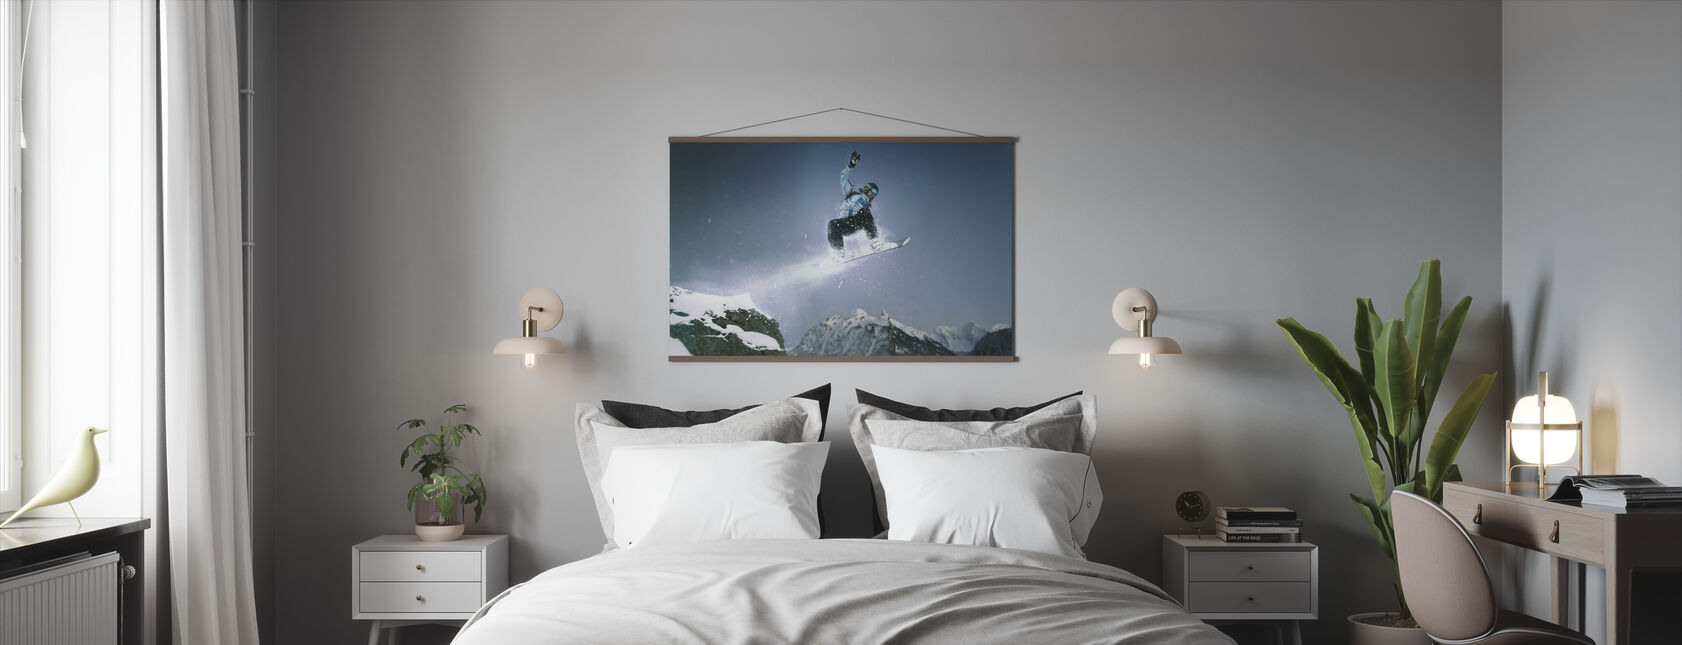 Snowboard Method Grab - Poster - Bedroom